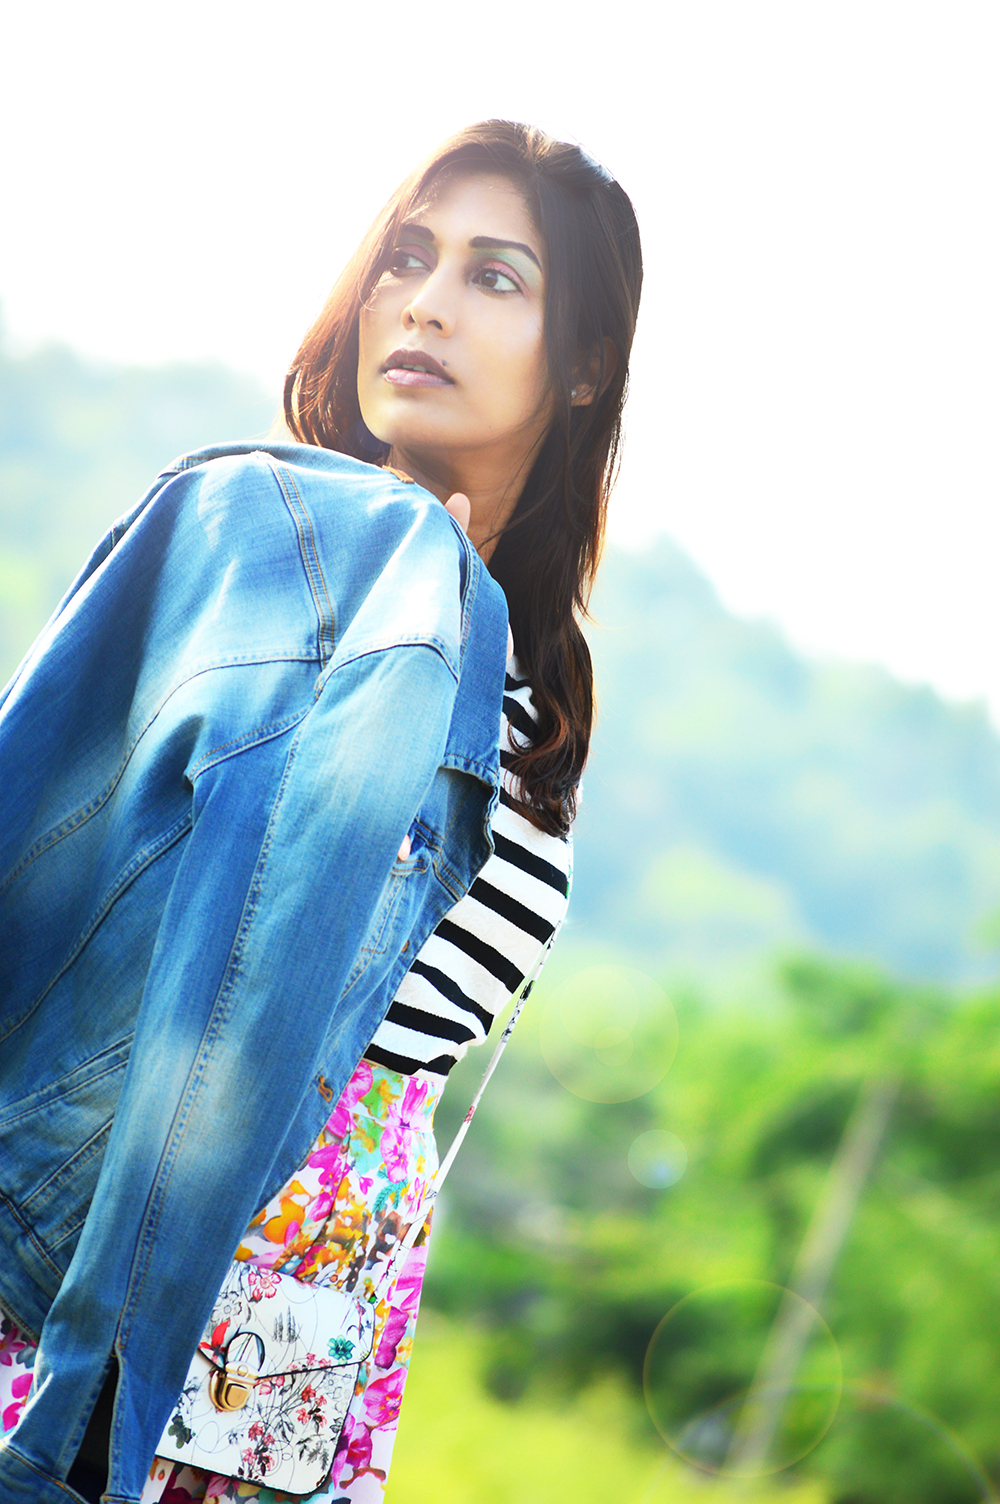 Floral Print, Fashion, Summer Fashion, Style, Indian Fashion Blogger, Beauty, Photography-4